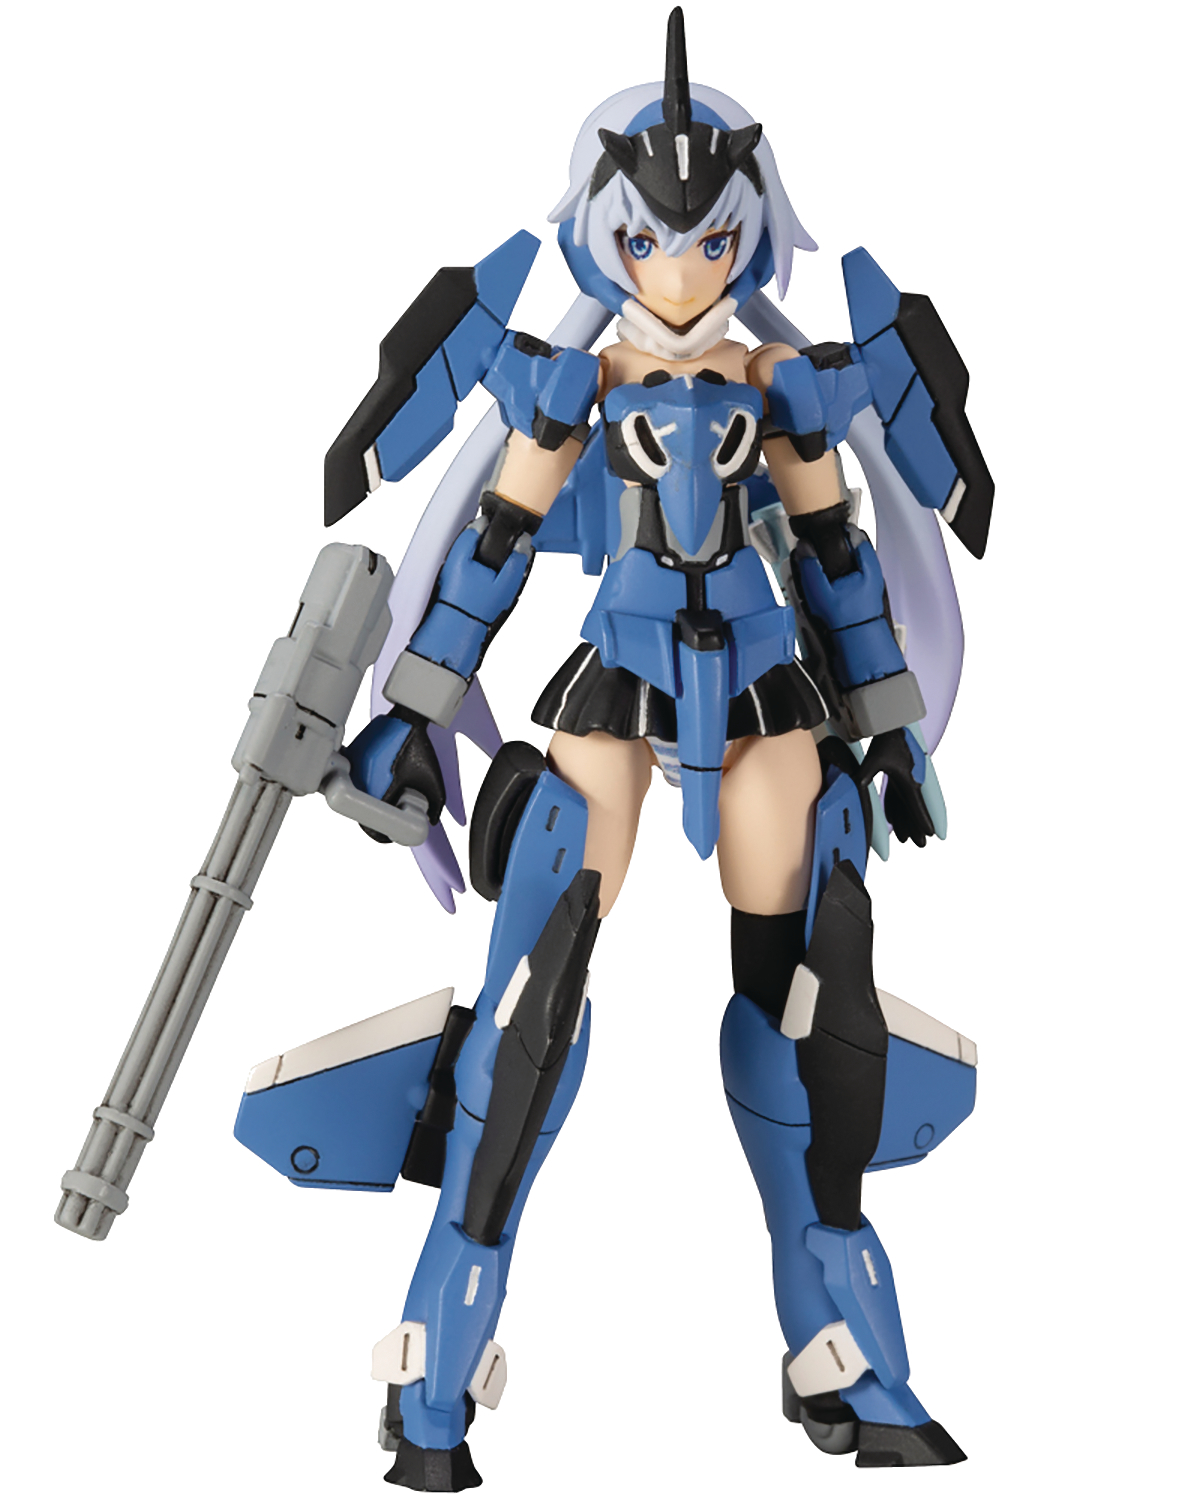 FRAME ARMS GIRL HANDSCALE GIRL STYLET MODEL KIT